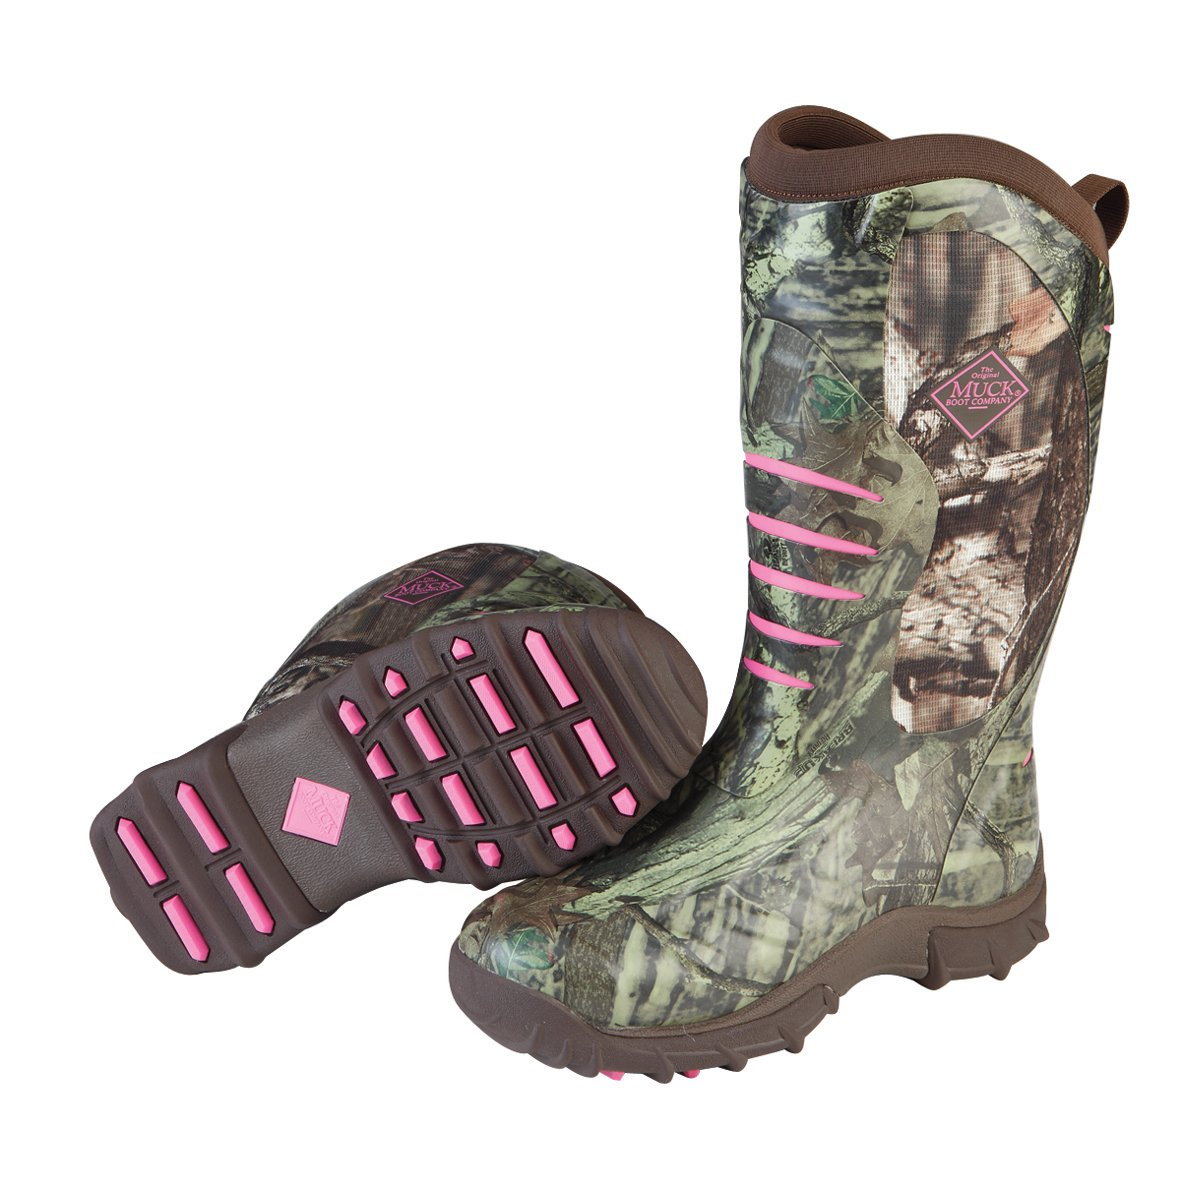 Muck Boots Pursuit Stealth Rubber Insulated Women's Hunting Boot Womens Pursuit Stealth-U